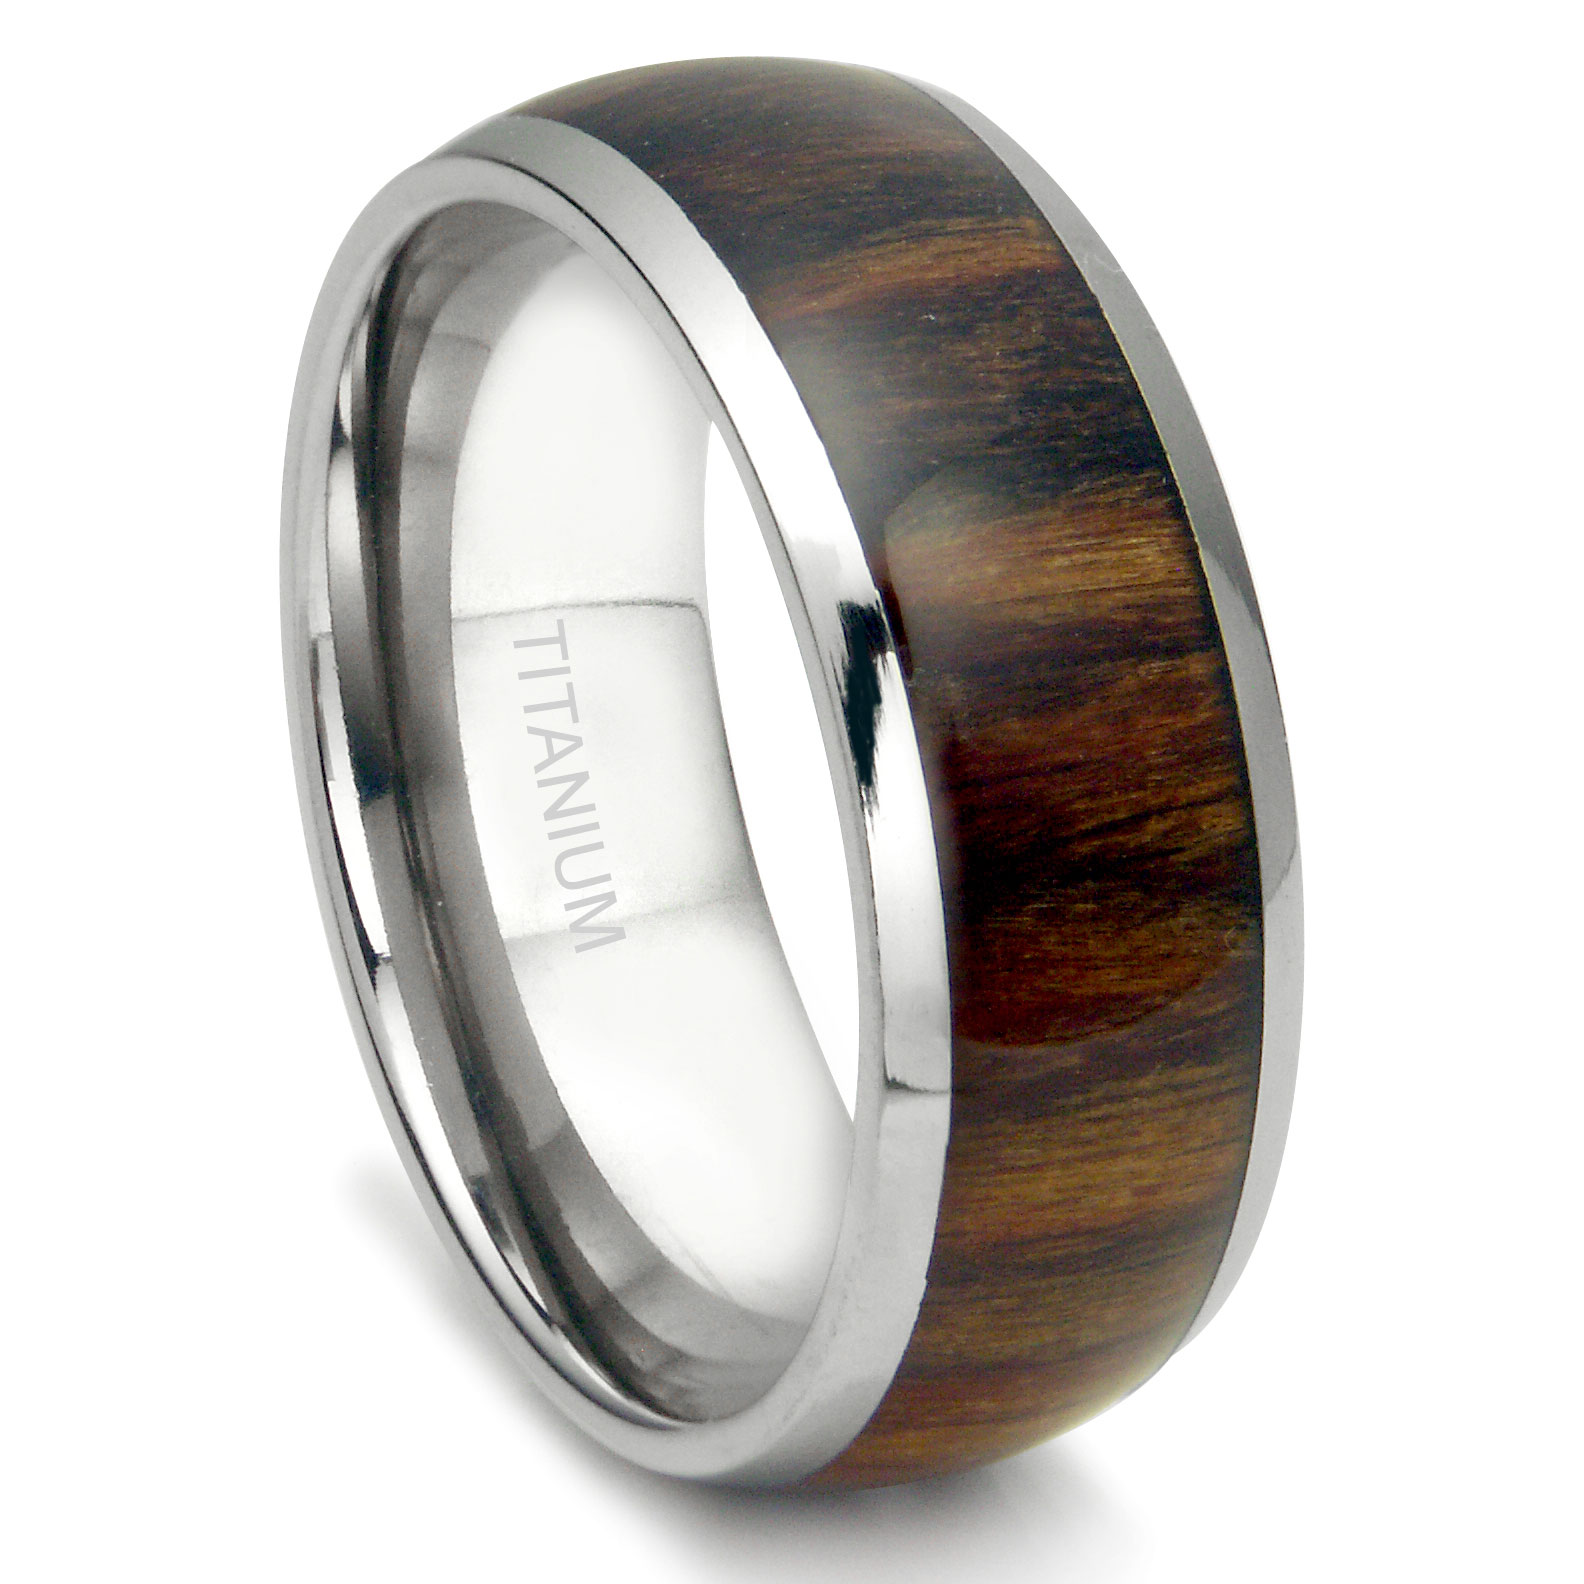 Titanium 8MM Domed Santos Rosewood Inlay Wedding Band Ring P duck band wedding ring Loading zoom